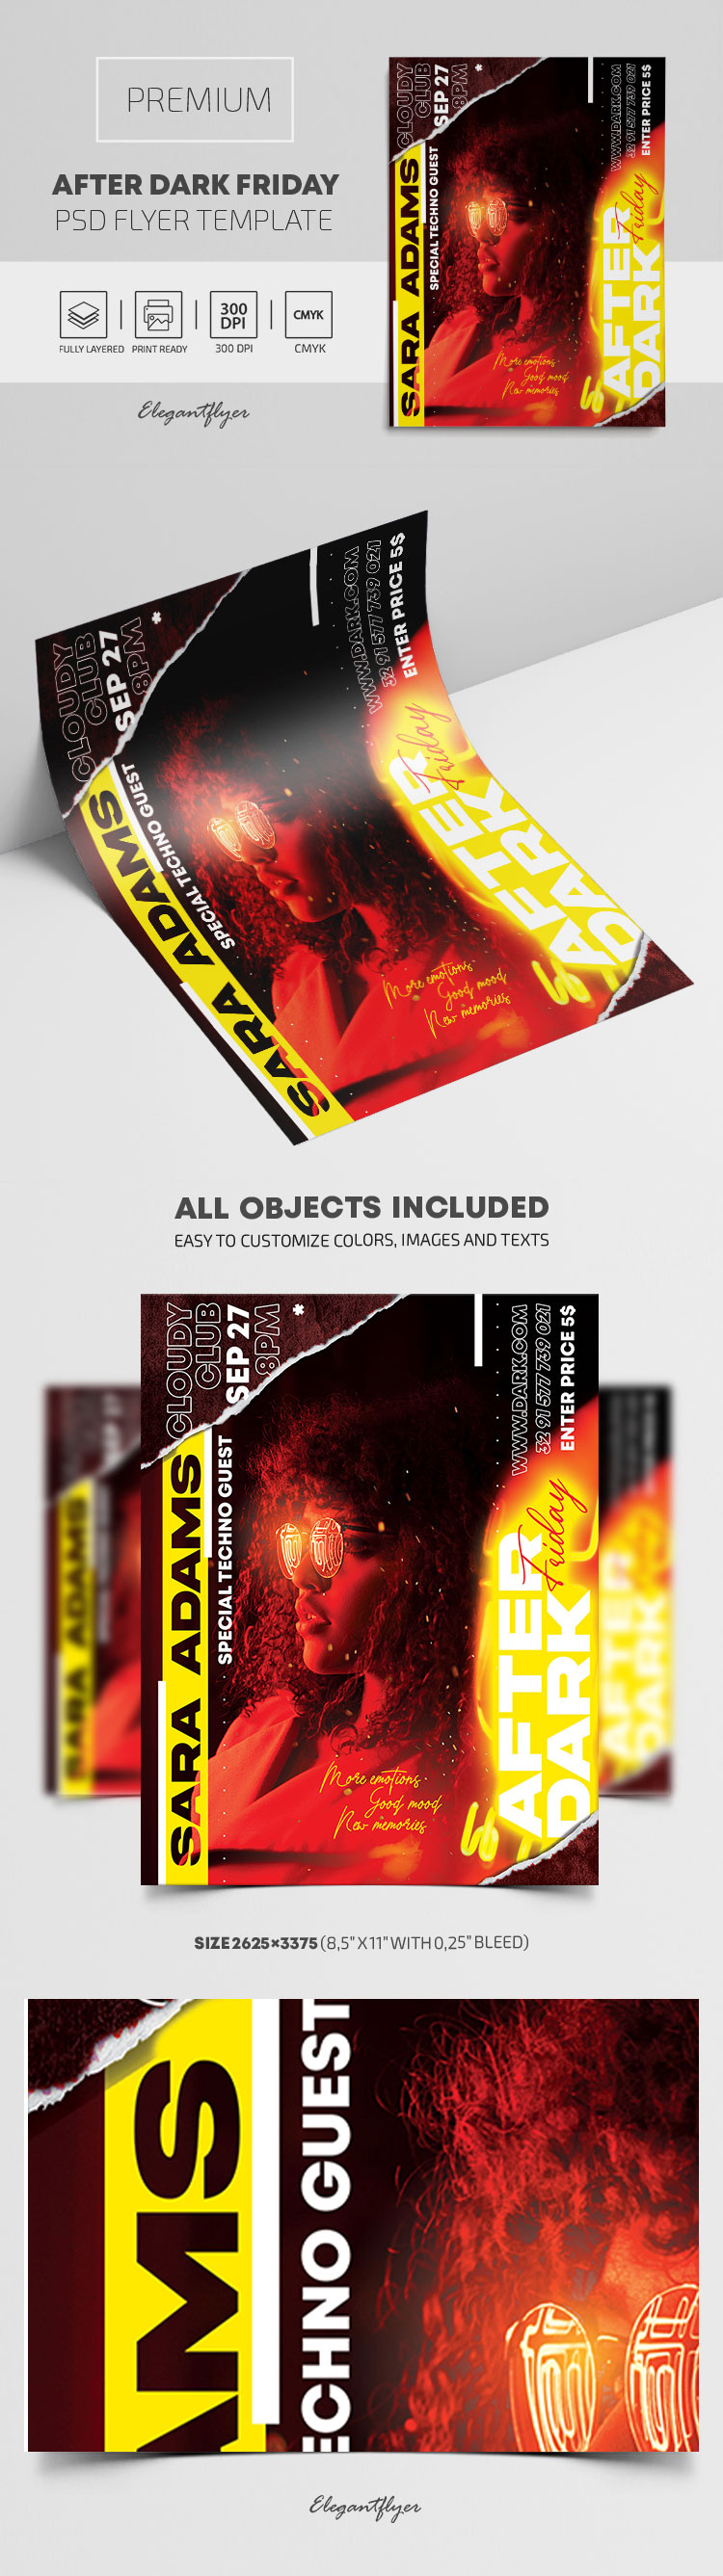 After Dark Friday Party – Premium PSD Flyer Template